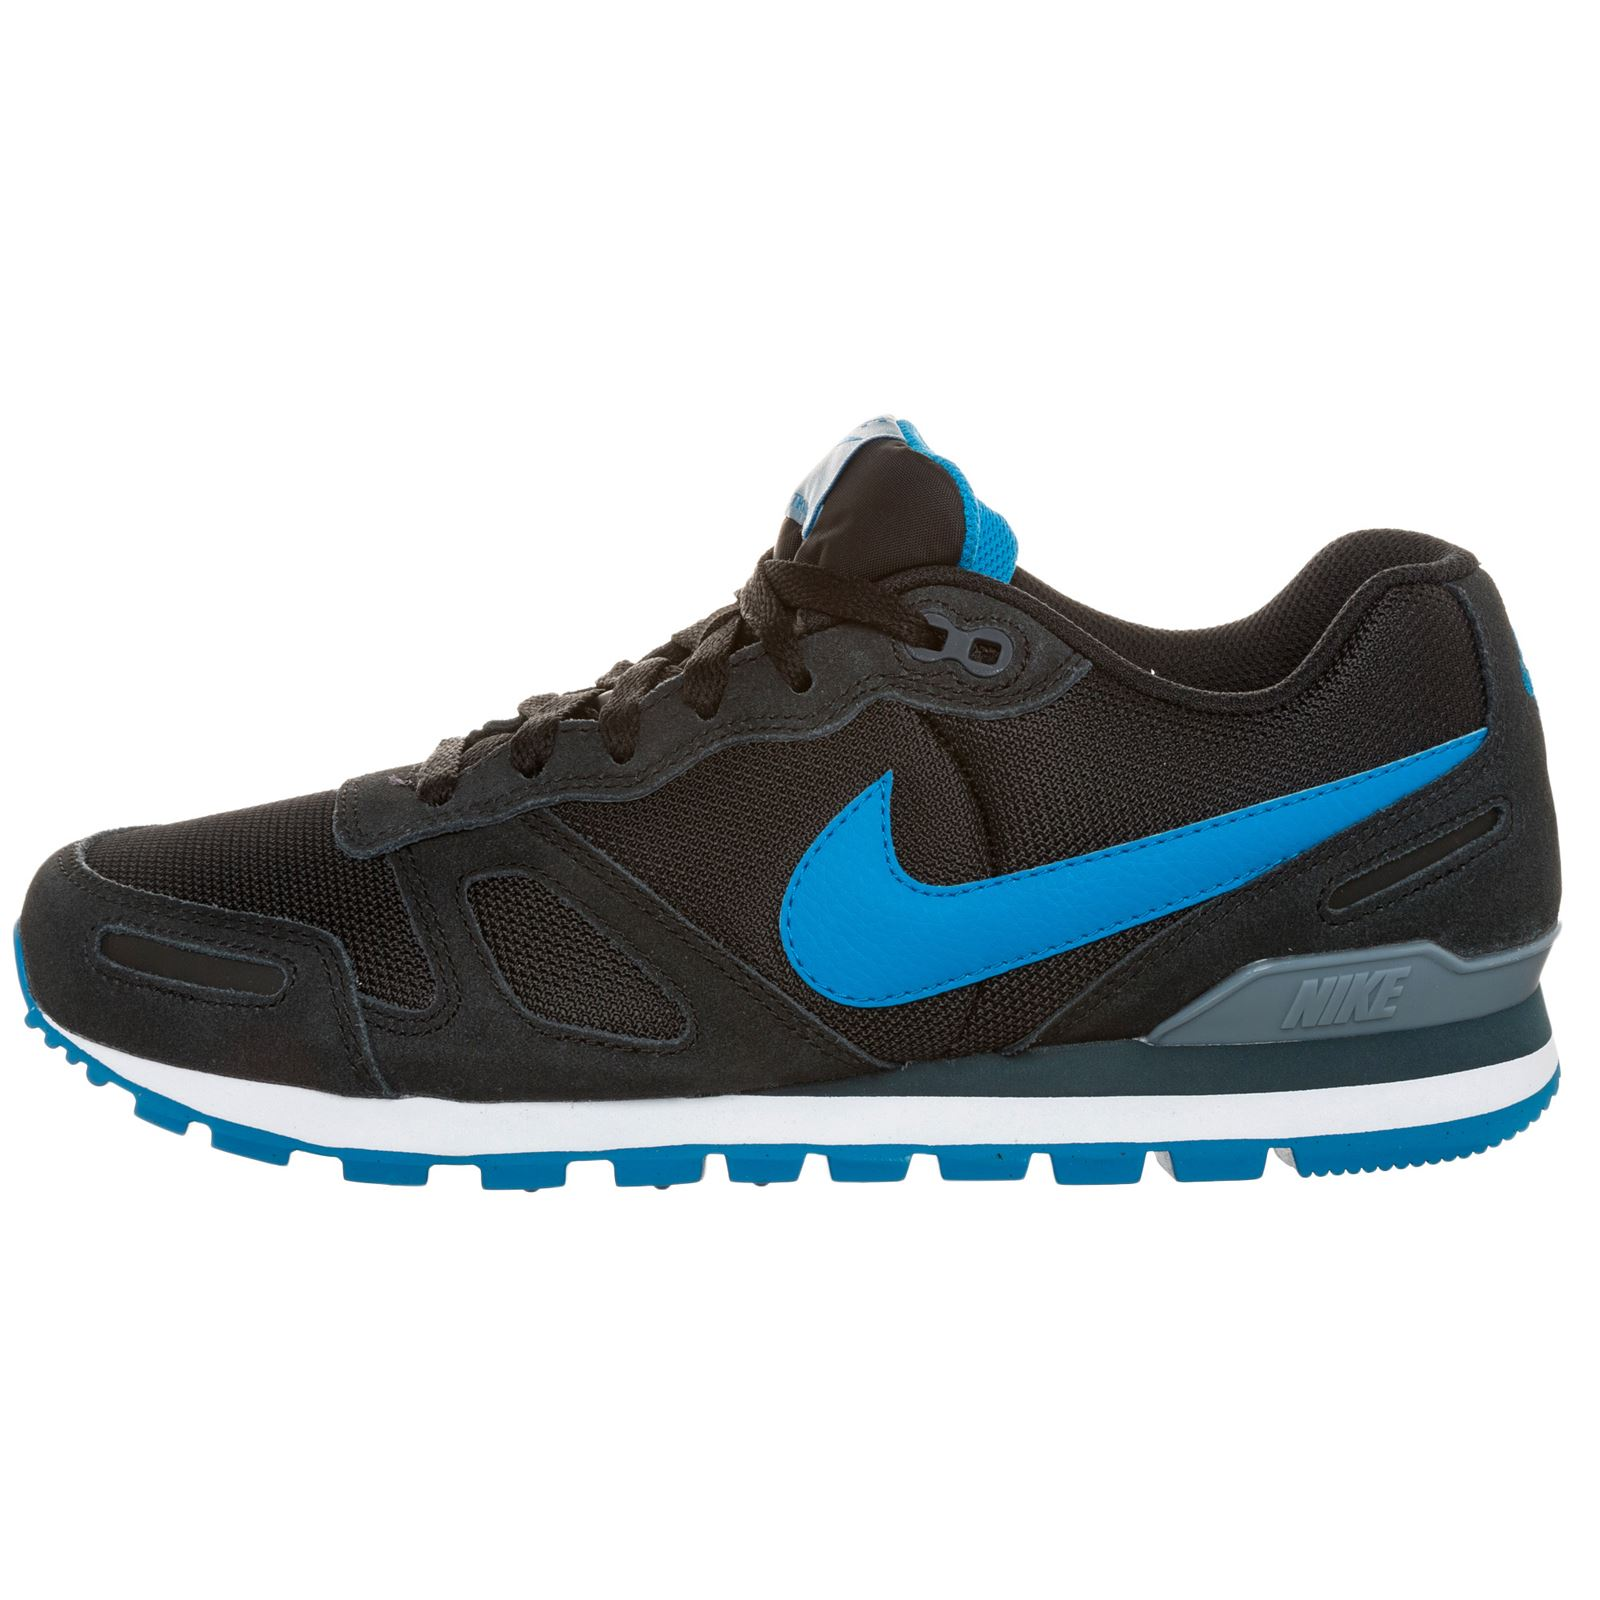 nike air waffle leather mens trainers ebay. Black Bedroom Furniture Sets. Home Design Ideas